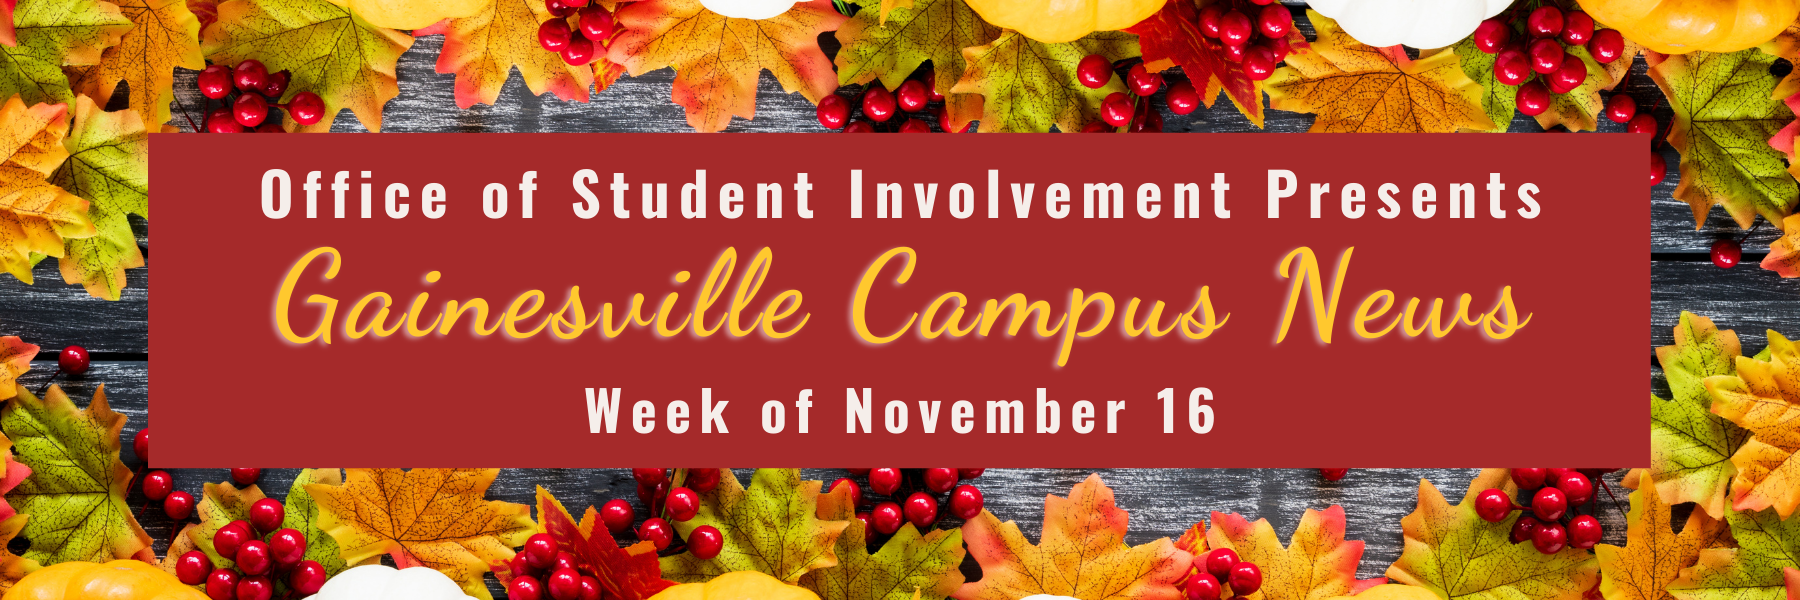 Office of Student Involvement presents Gainesville Campus News, Week of November 16